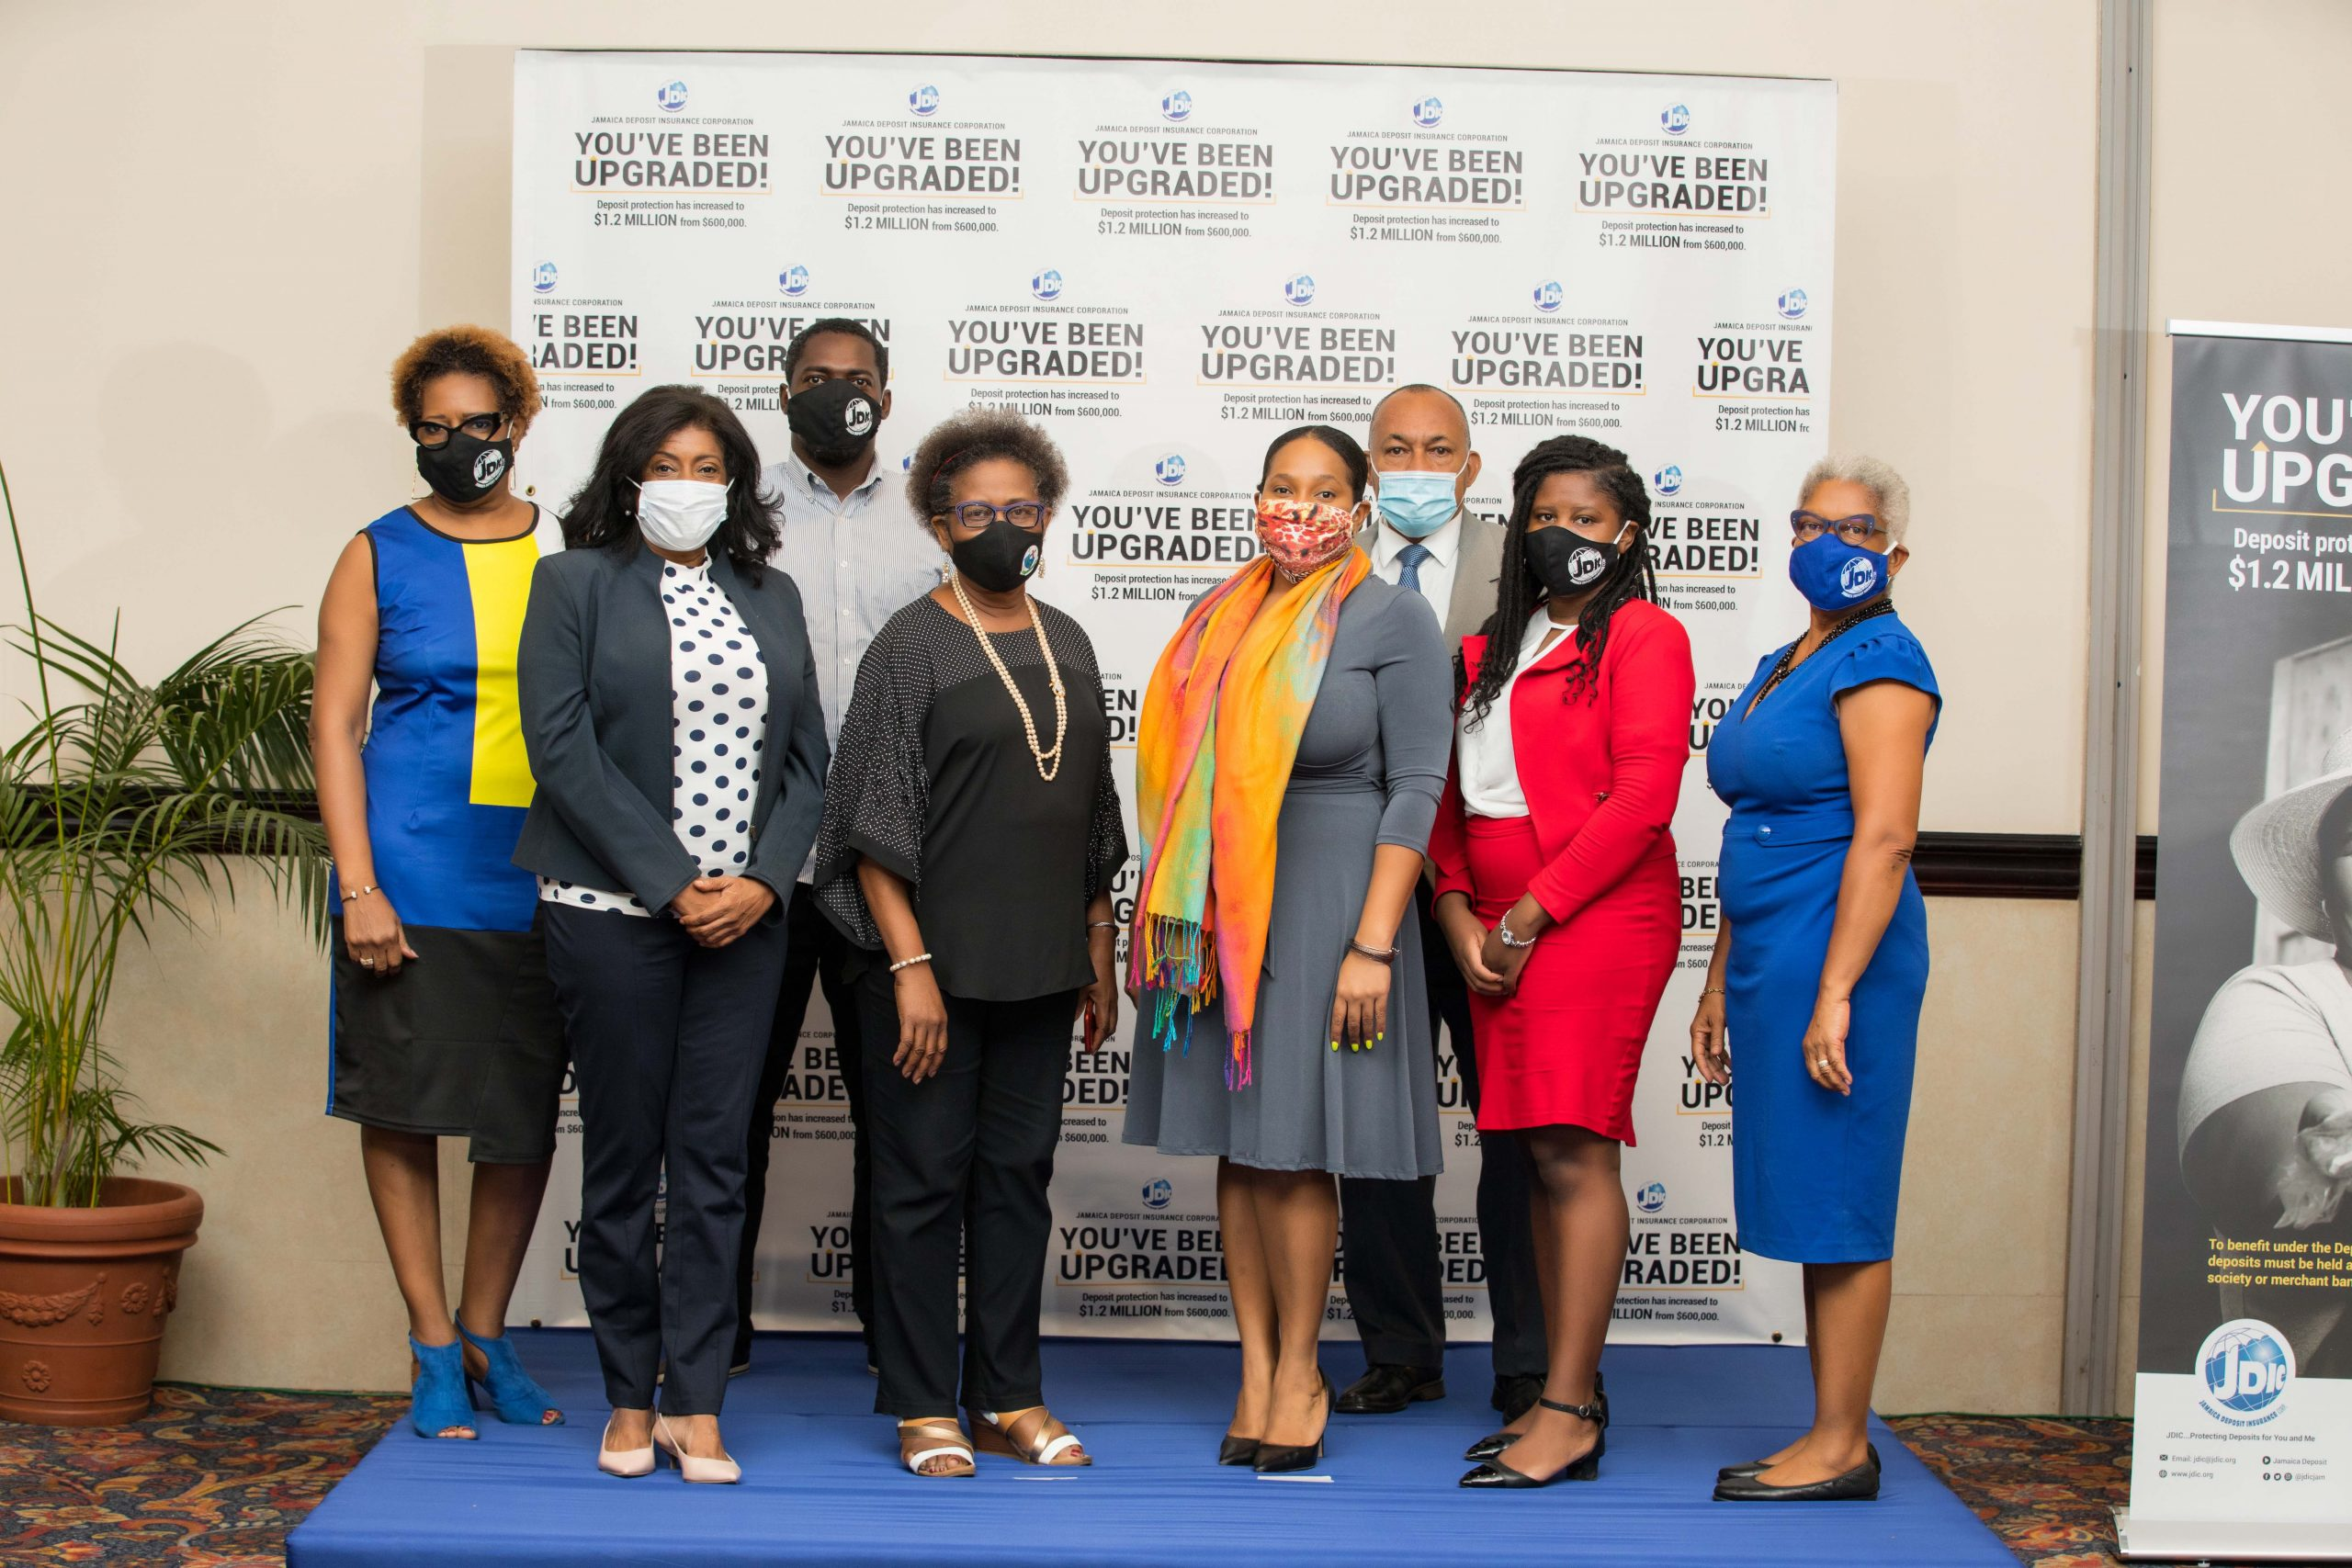 JDIC team members along with (L-R) Antoinette McKain, CEO, JDIC and Myrtle Halsall, OD, Board Chairman pause for a team photo opp at the JDIC's You've Been Upgraded Digital Townhall.